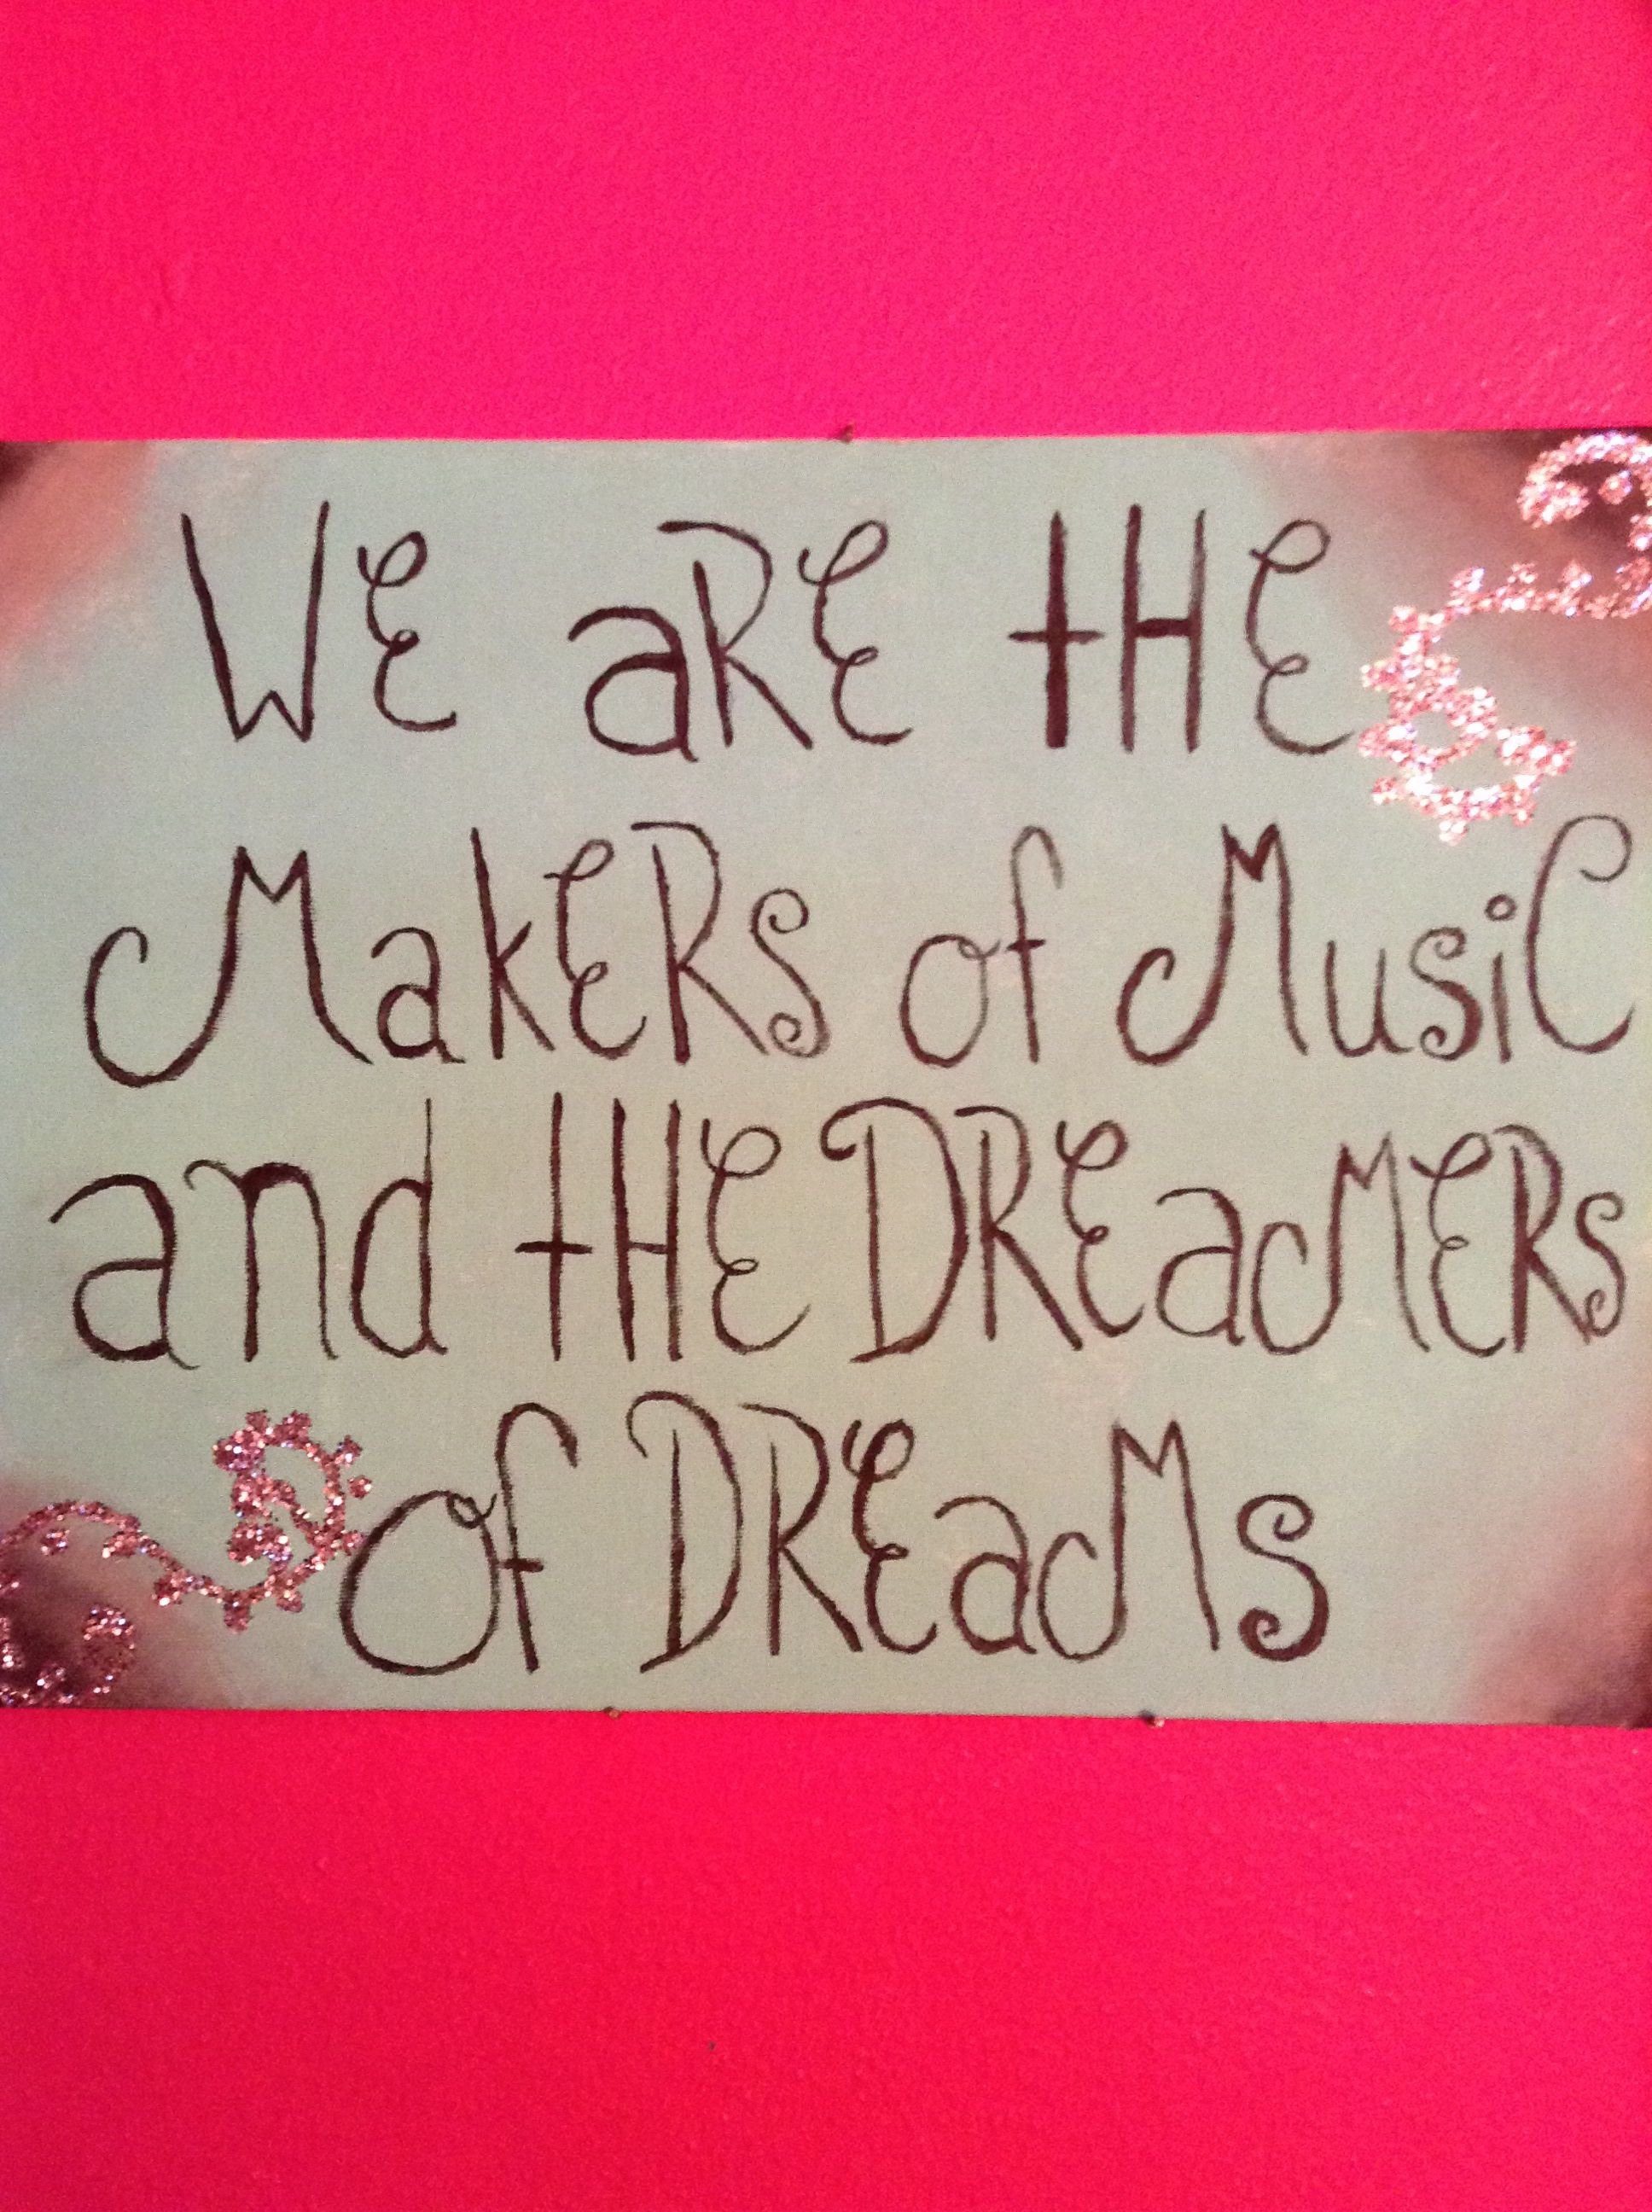 We are the makers of music and the dreamers of dreams